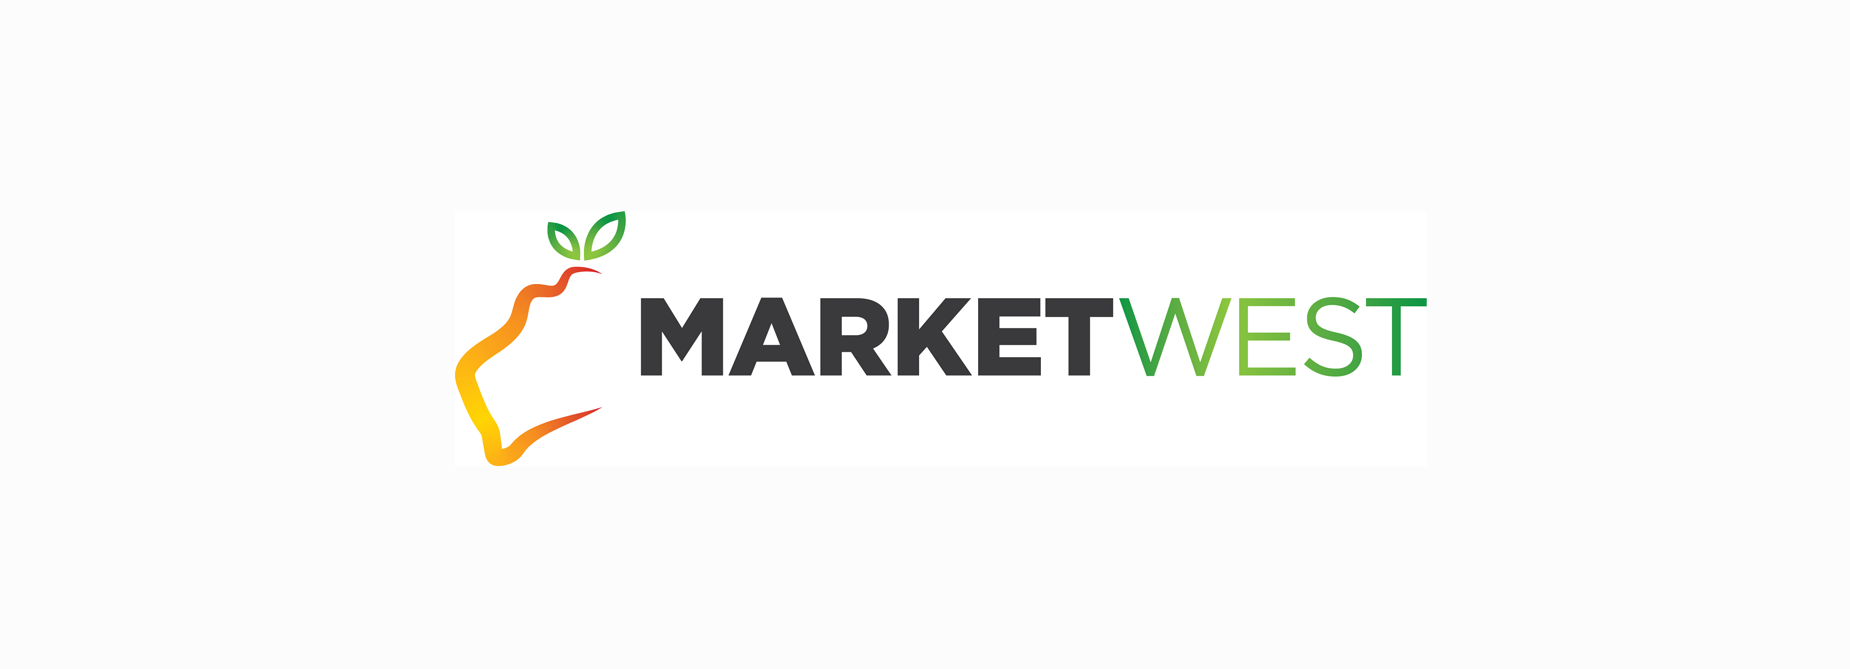 Market West Logo